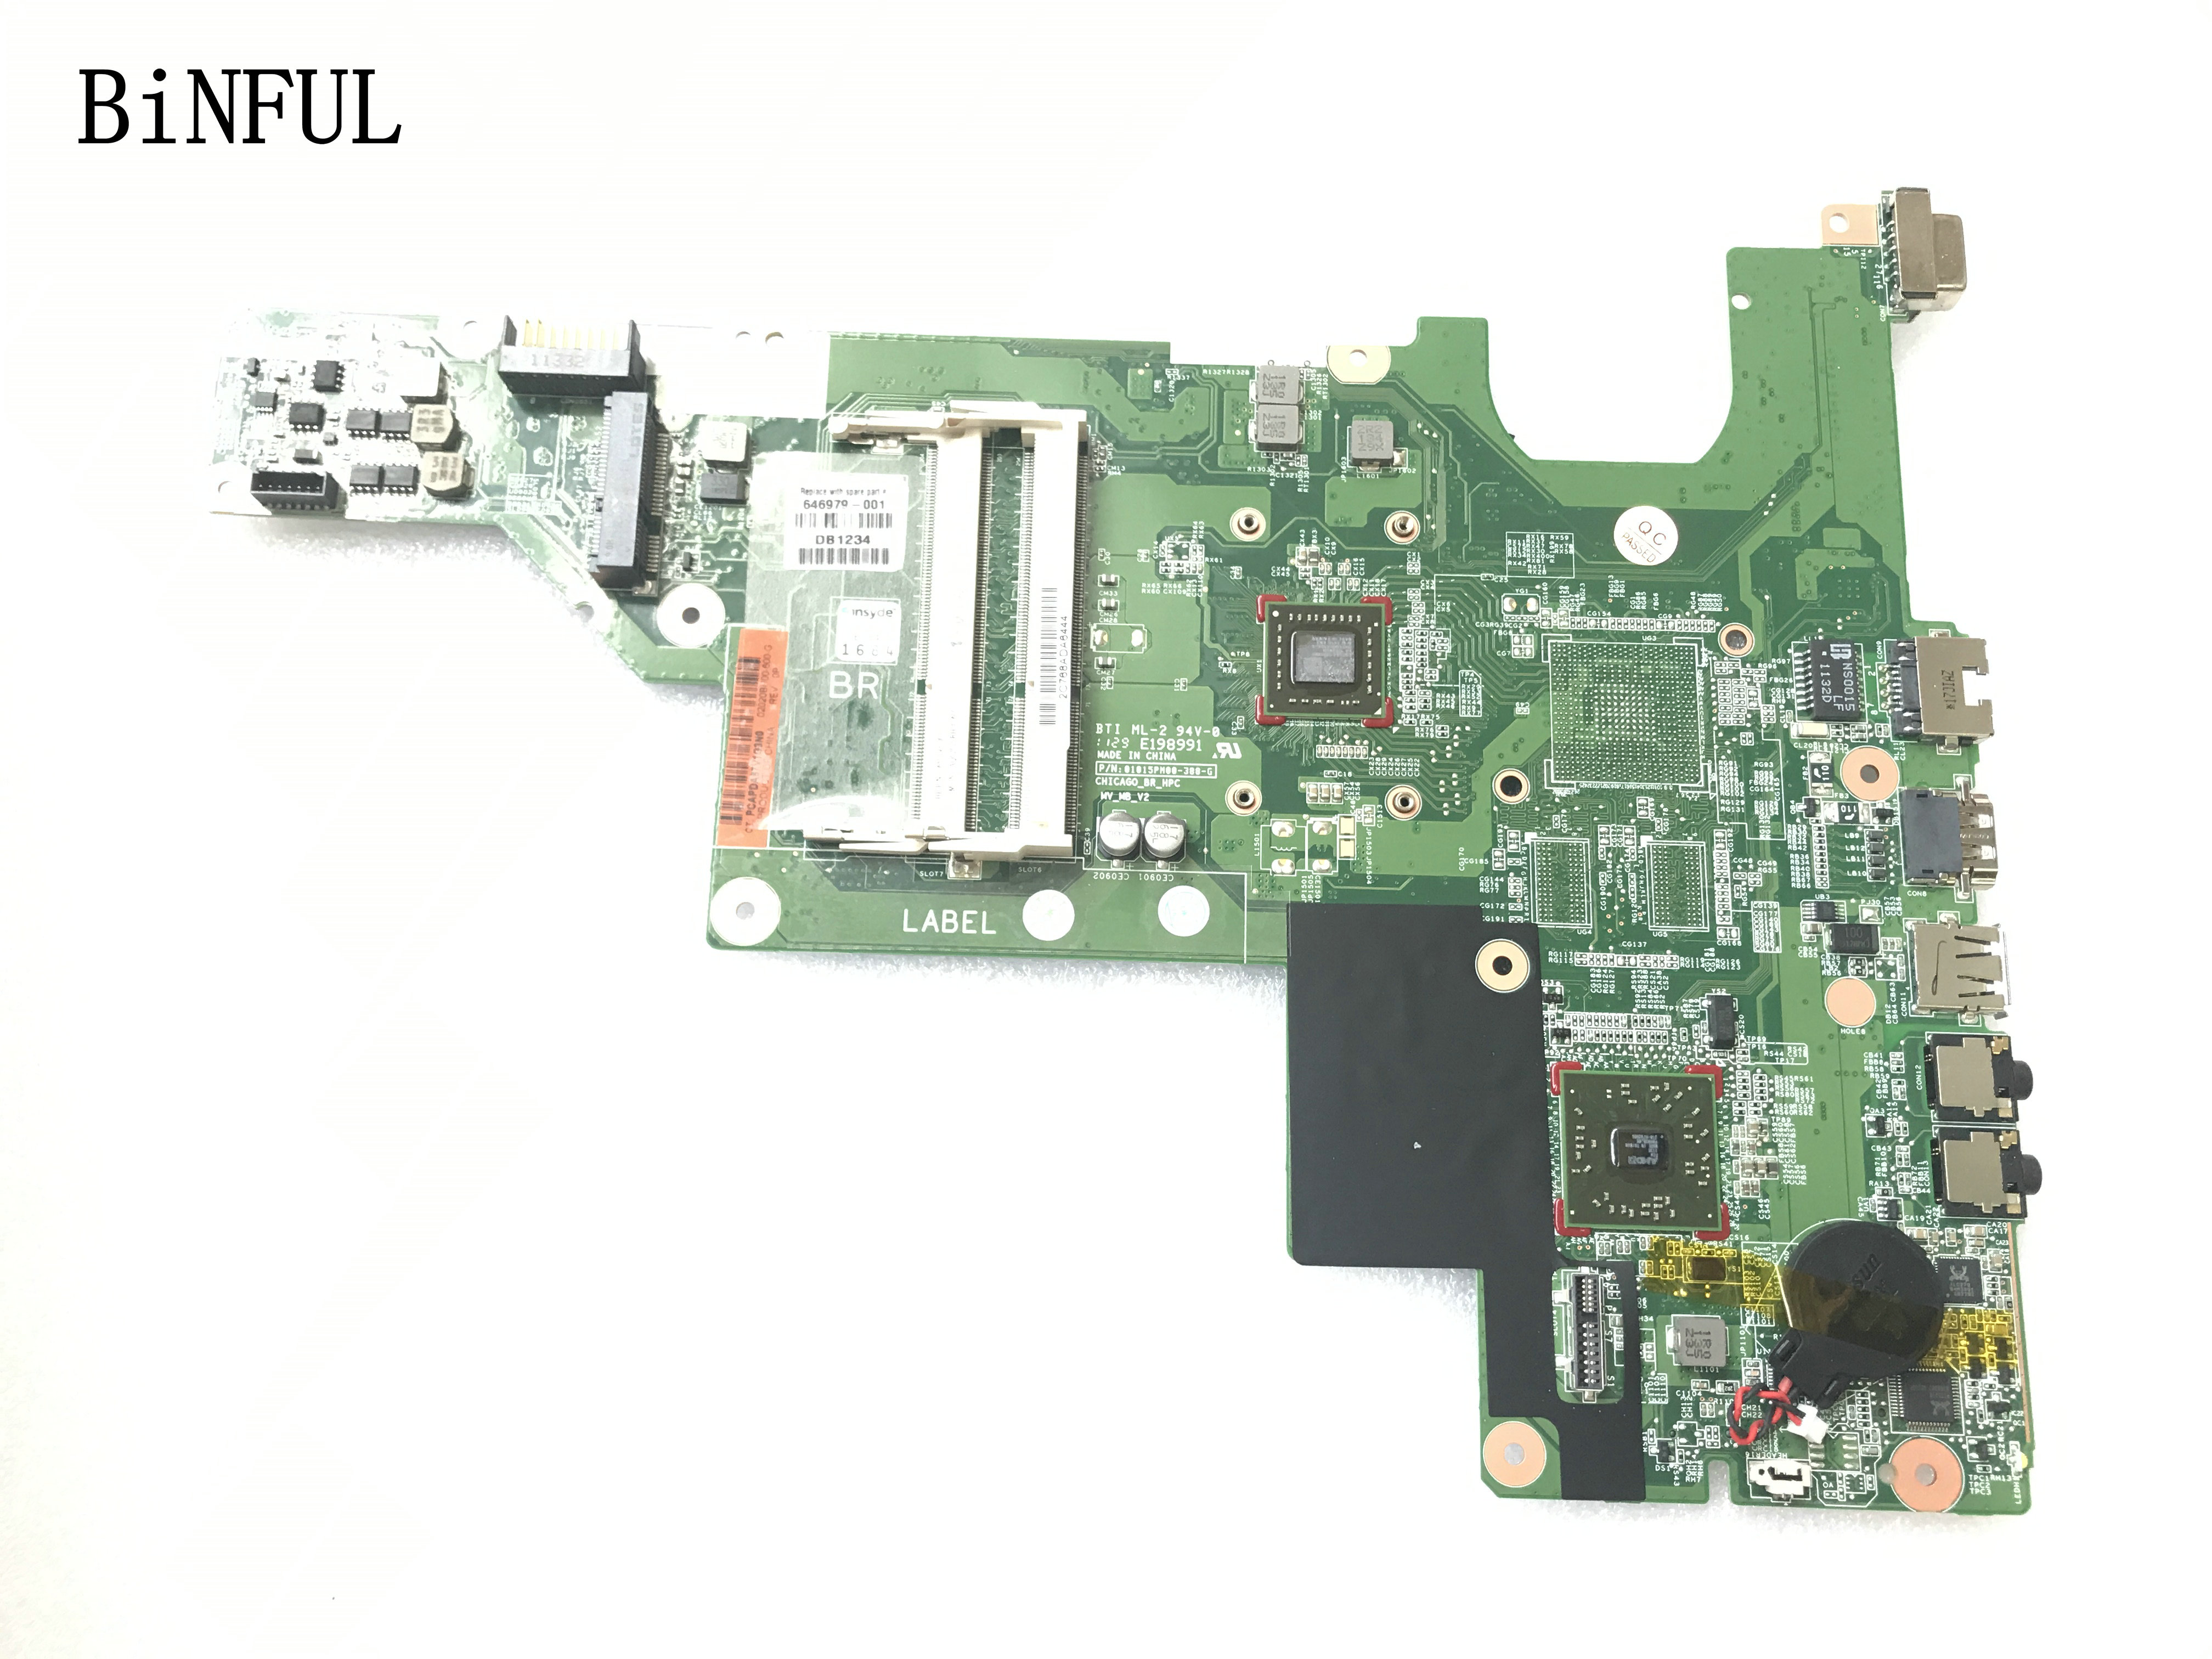 BiNFUL SUPER 646979-001 100% NEW MAINBOARD LAPTOP MOTHERBOARD FOR HP 635 435 NOTEBOOK PC WITH ONBOARD <font><b>PROCESSOR</b></font> image